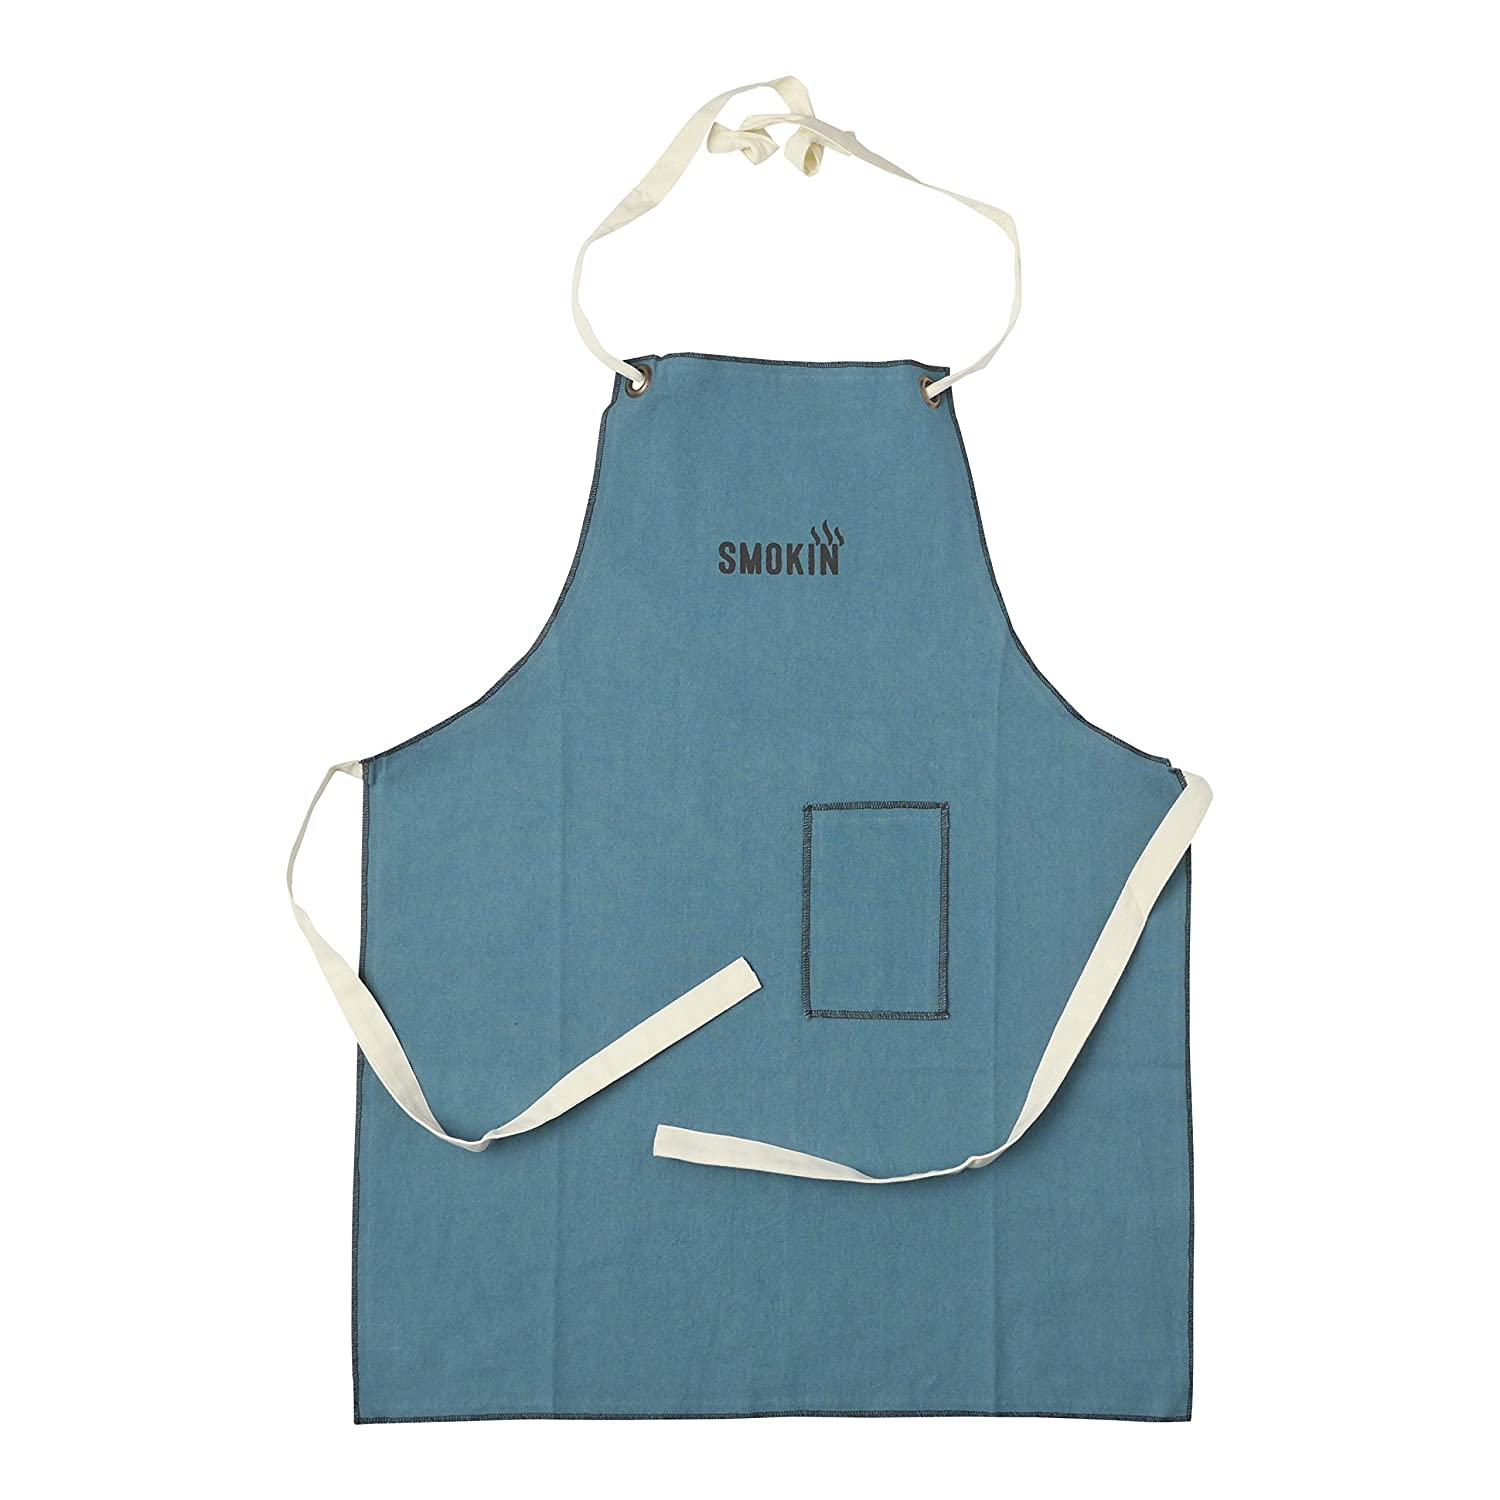 Amazon.com: Hallmark Home Cotton Apron with Pocket, \